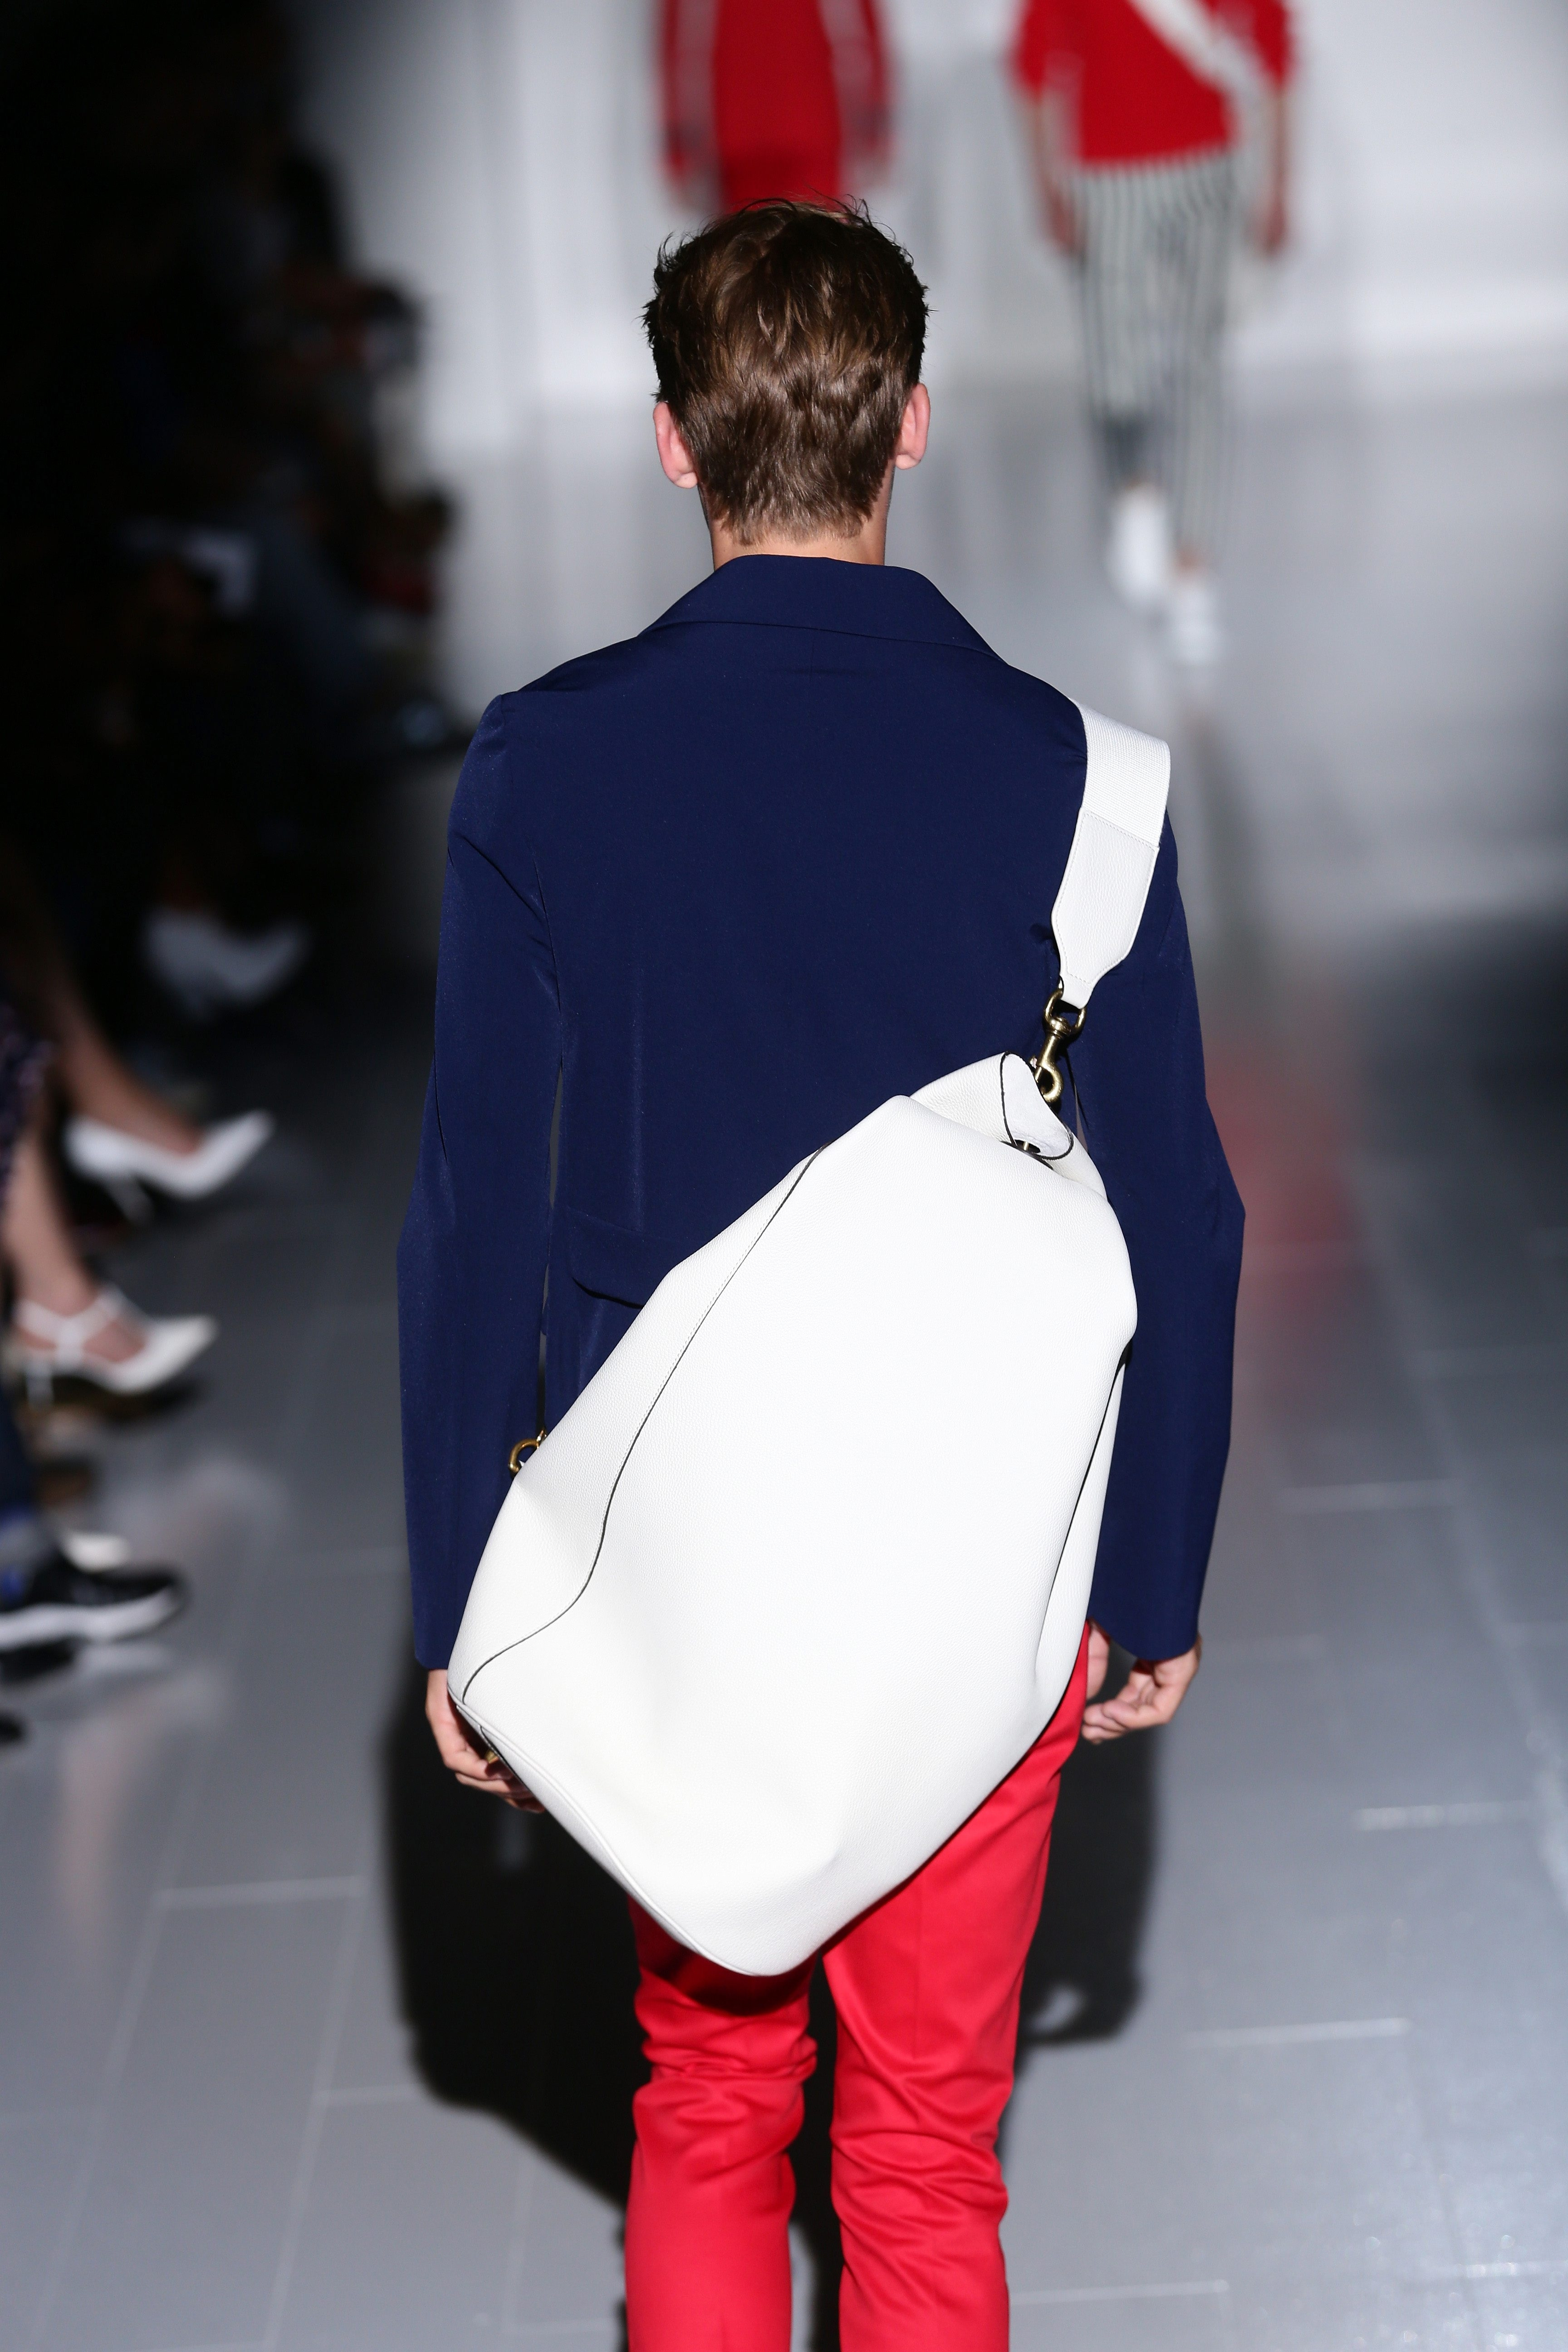 A model with white duffel bag walks the runway during last week's Gucci show in Milan.